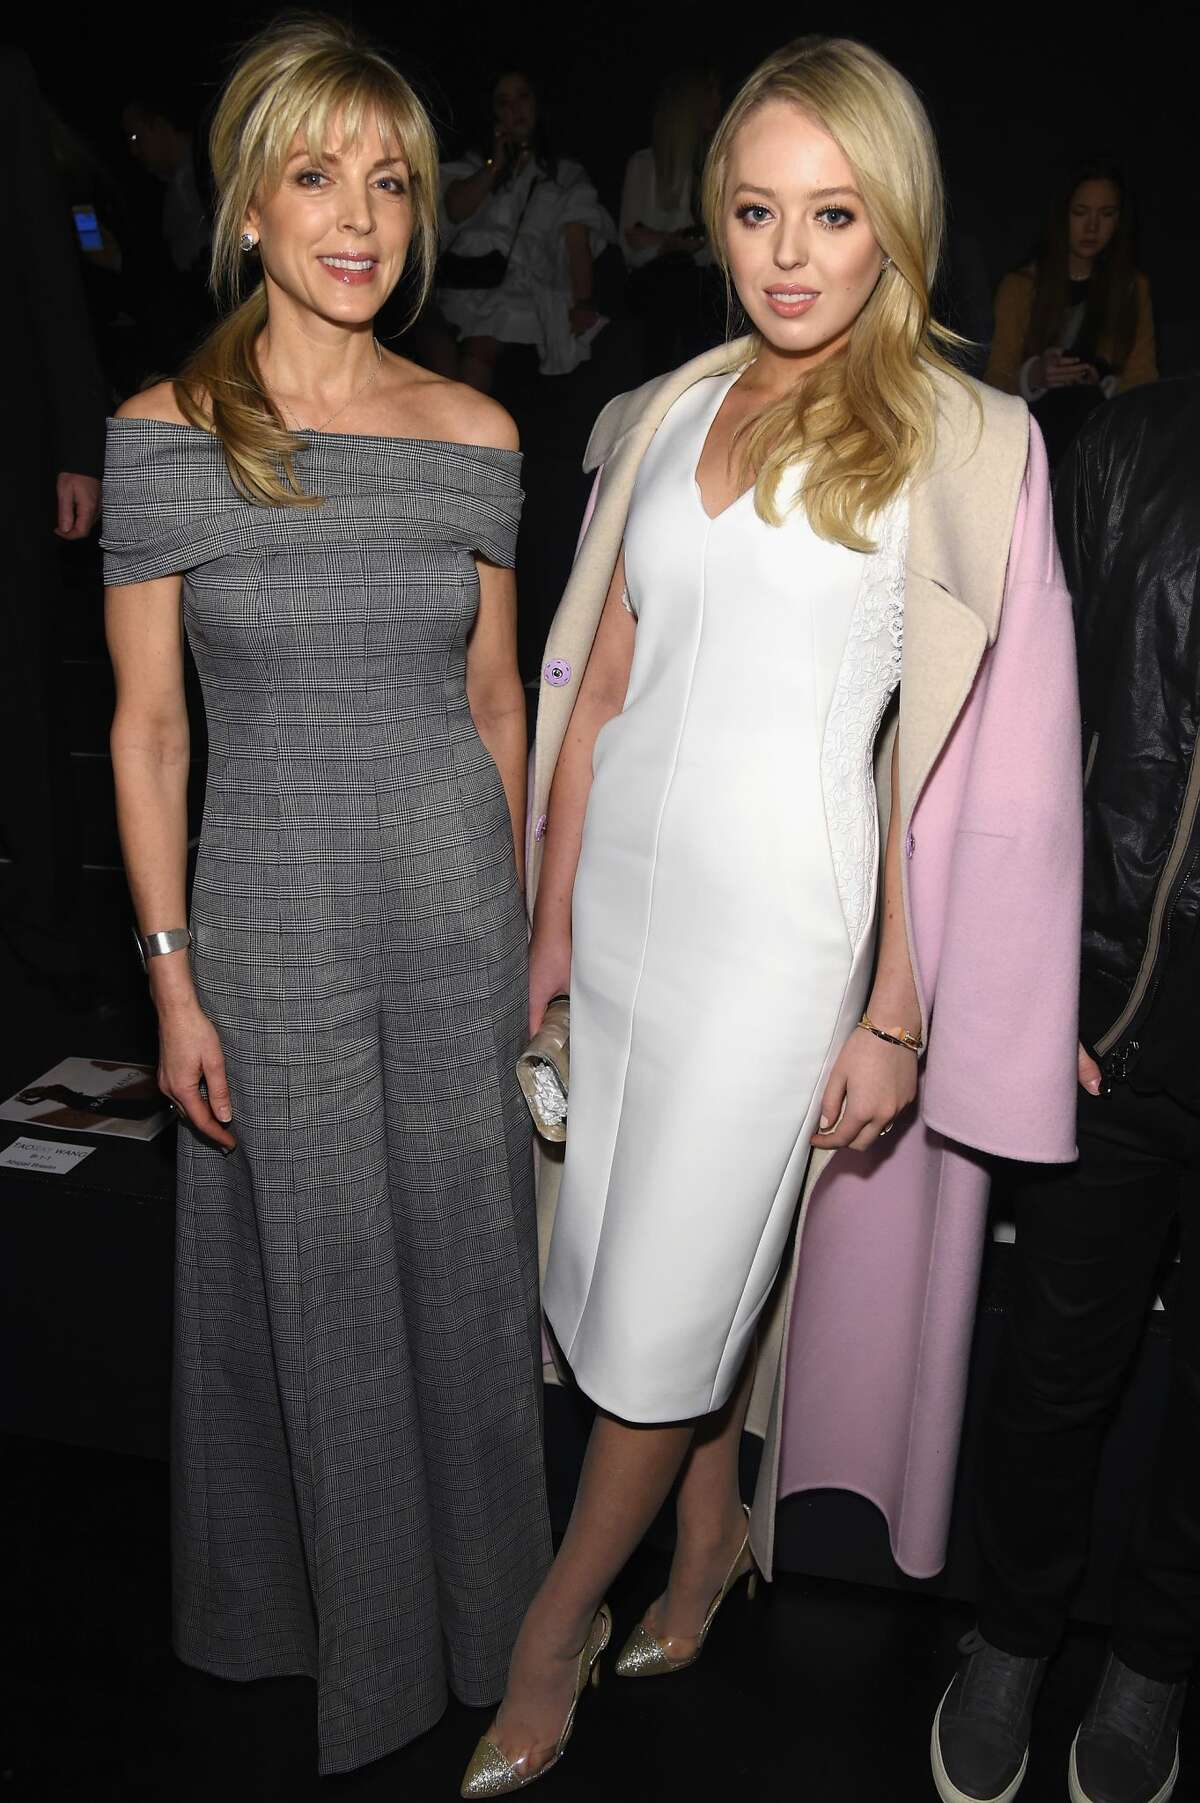 Marla Maples and Tiffany Trump attend the Taoray Wang collection. >>Keep clicking for more of the best and worst dressed celebs